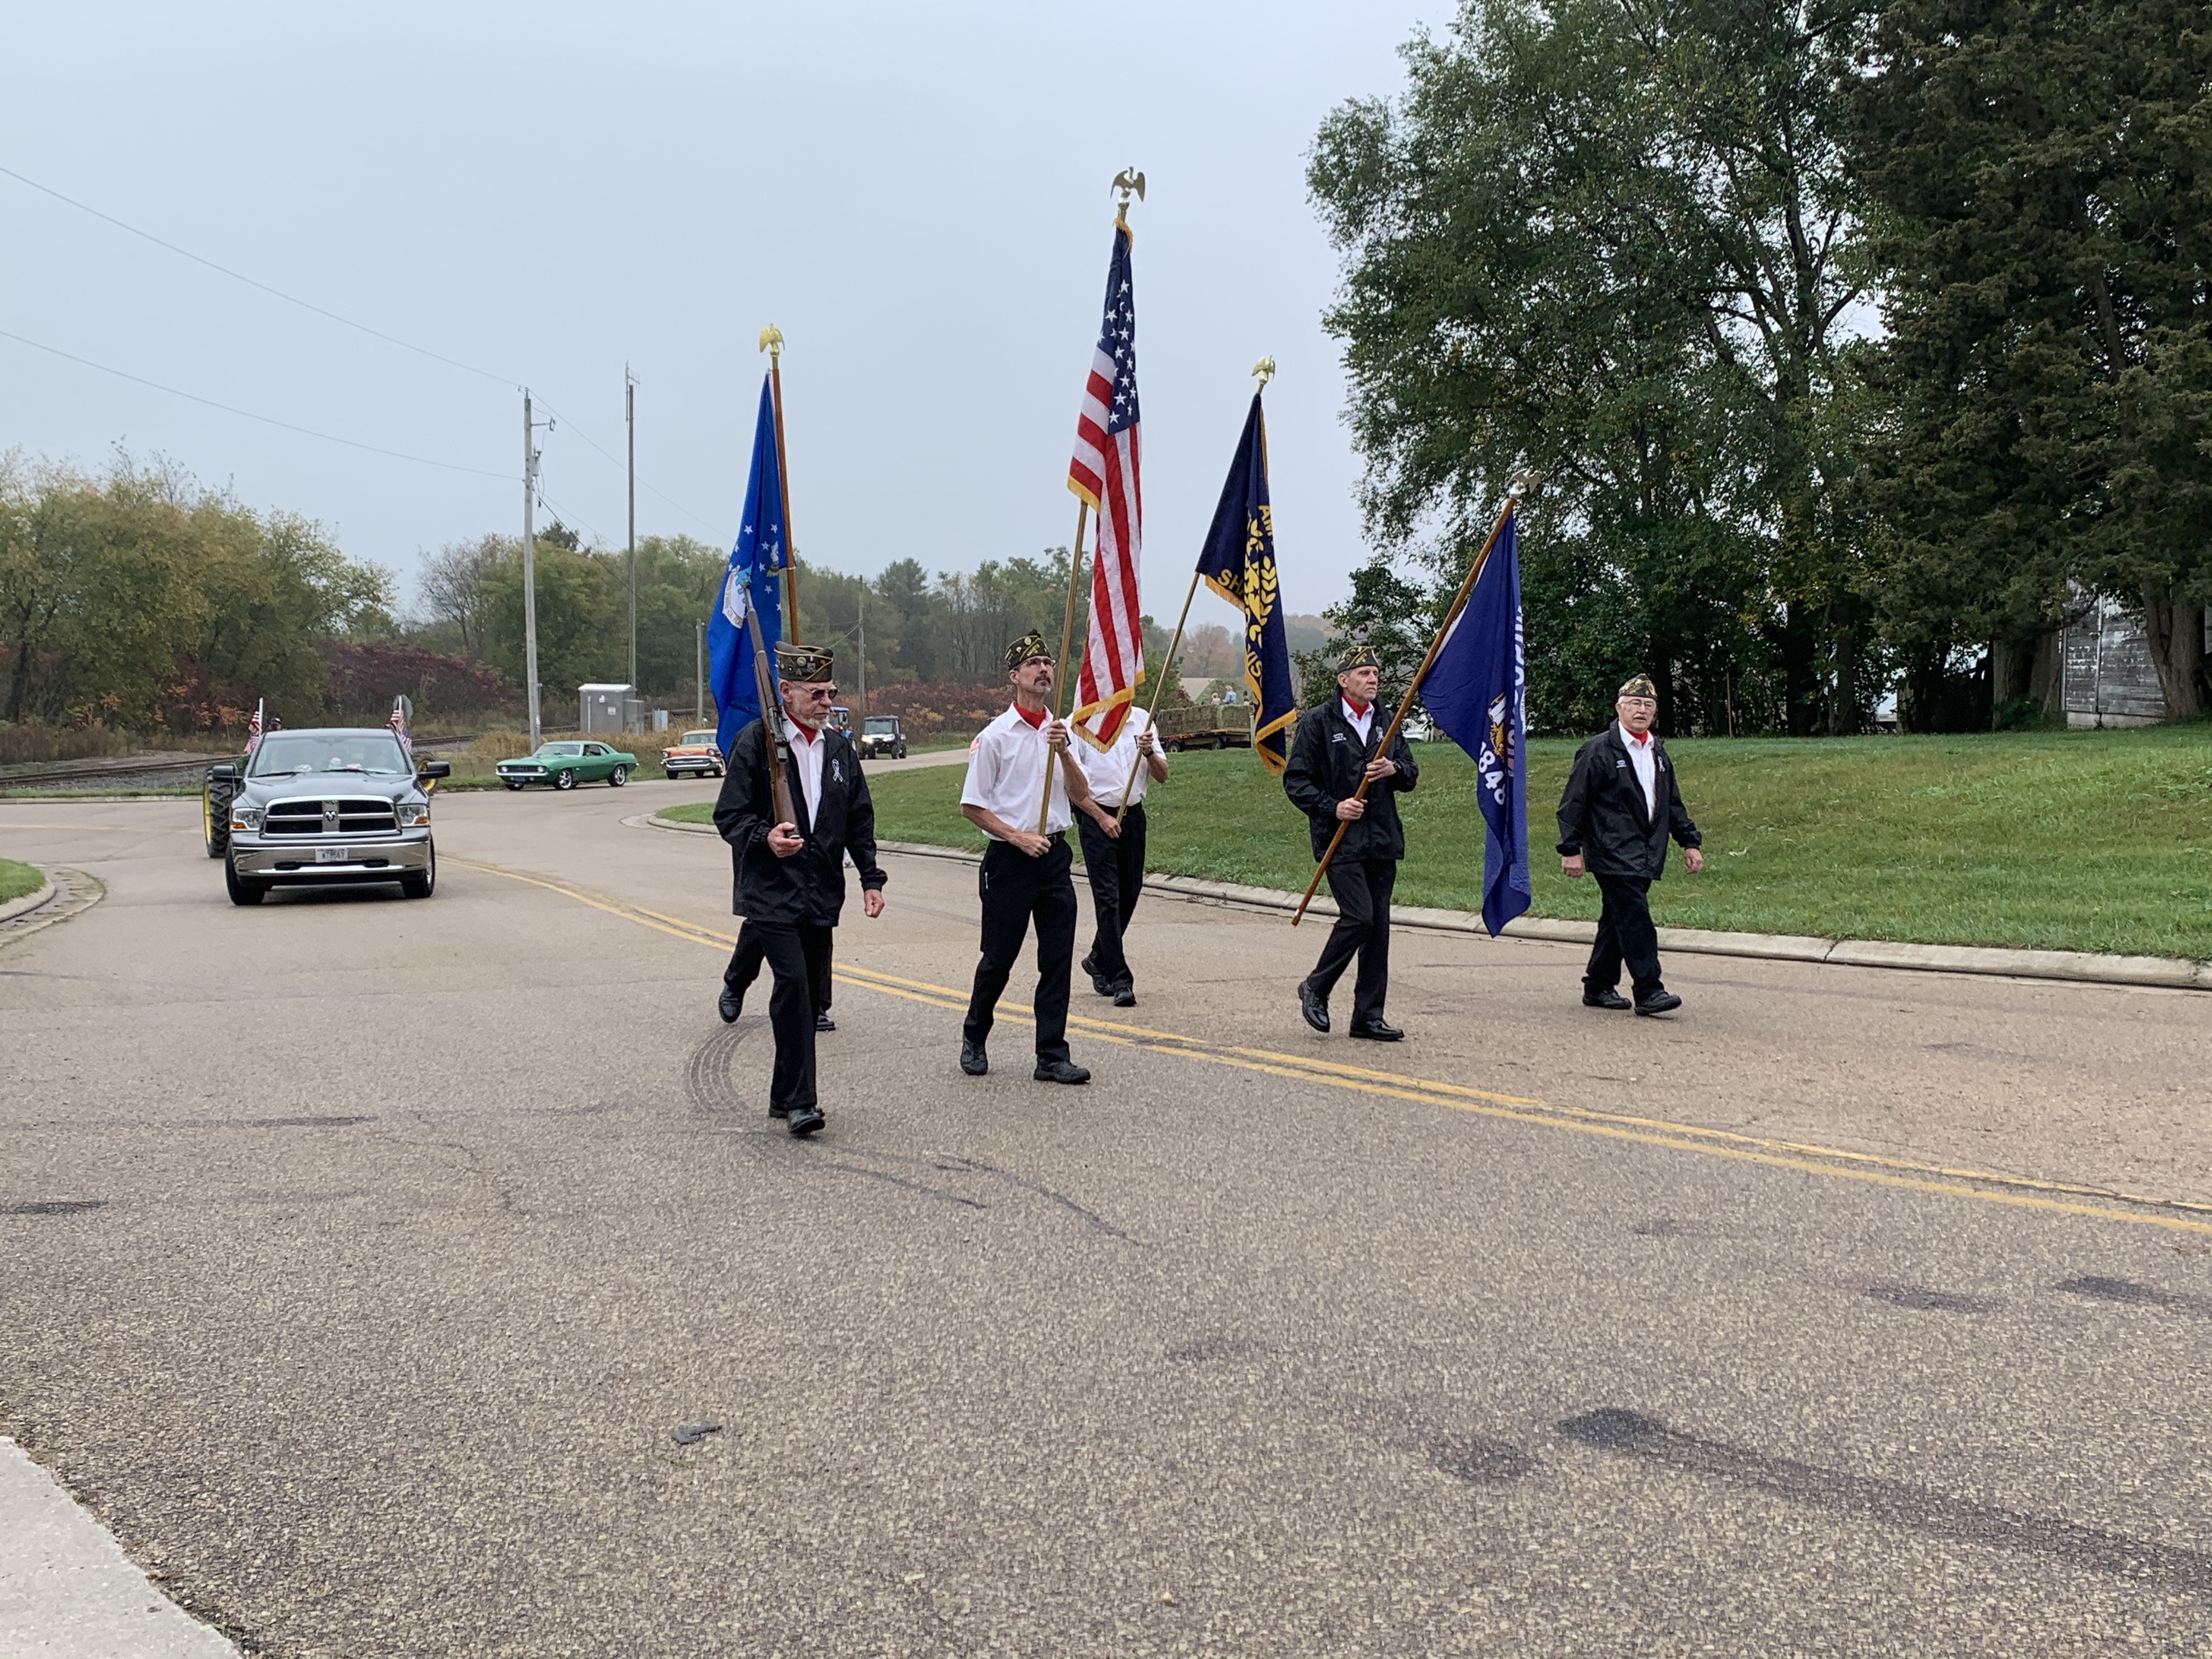 Members of the American Legion Post lead the parade down County Road T in Lunds during Bohemian Fest at Lunds Corner Bar on Oct. 9.Luke Reimer | NEW Media